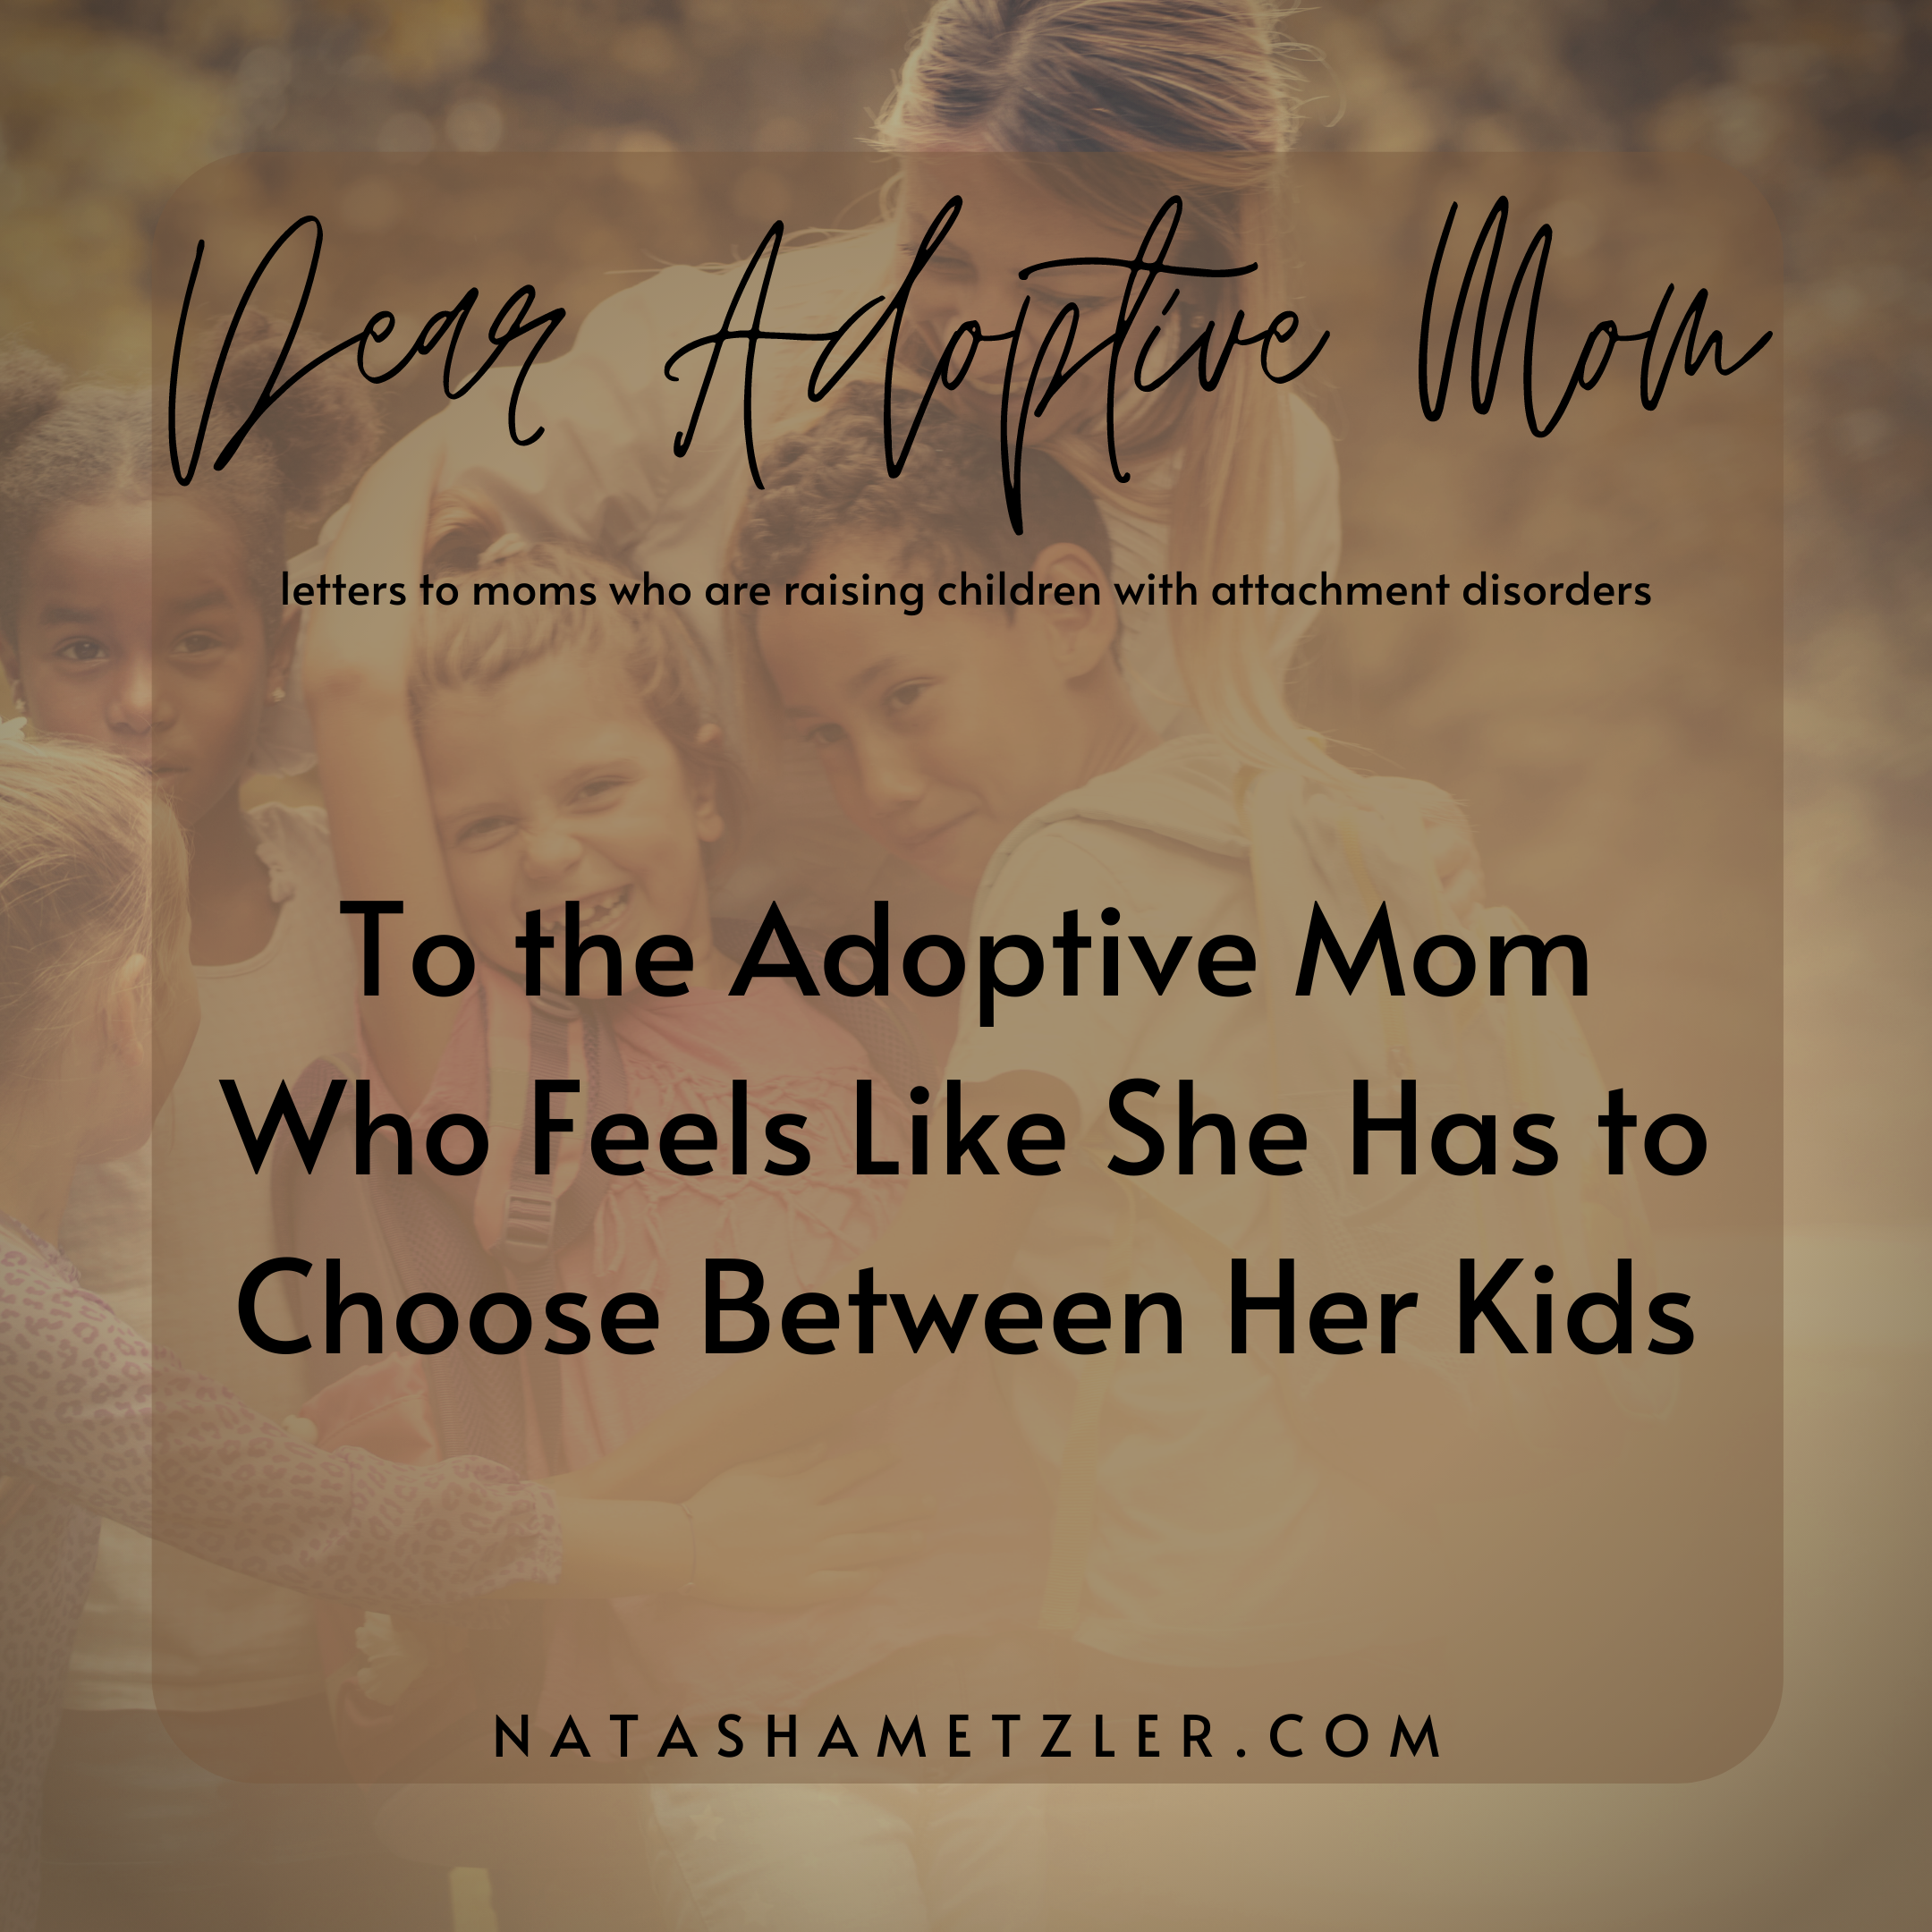 To the Adoptive Mom Who Feels She Has to Choose Between Her Kids